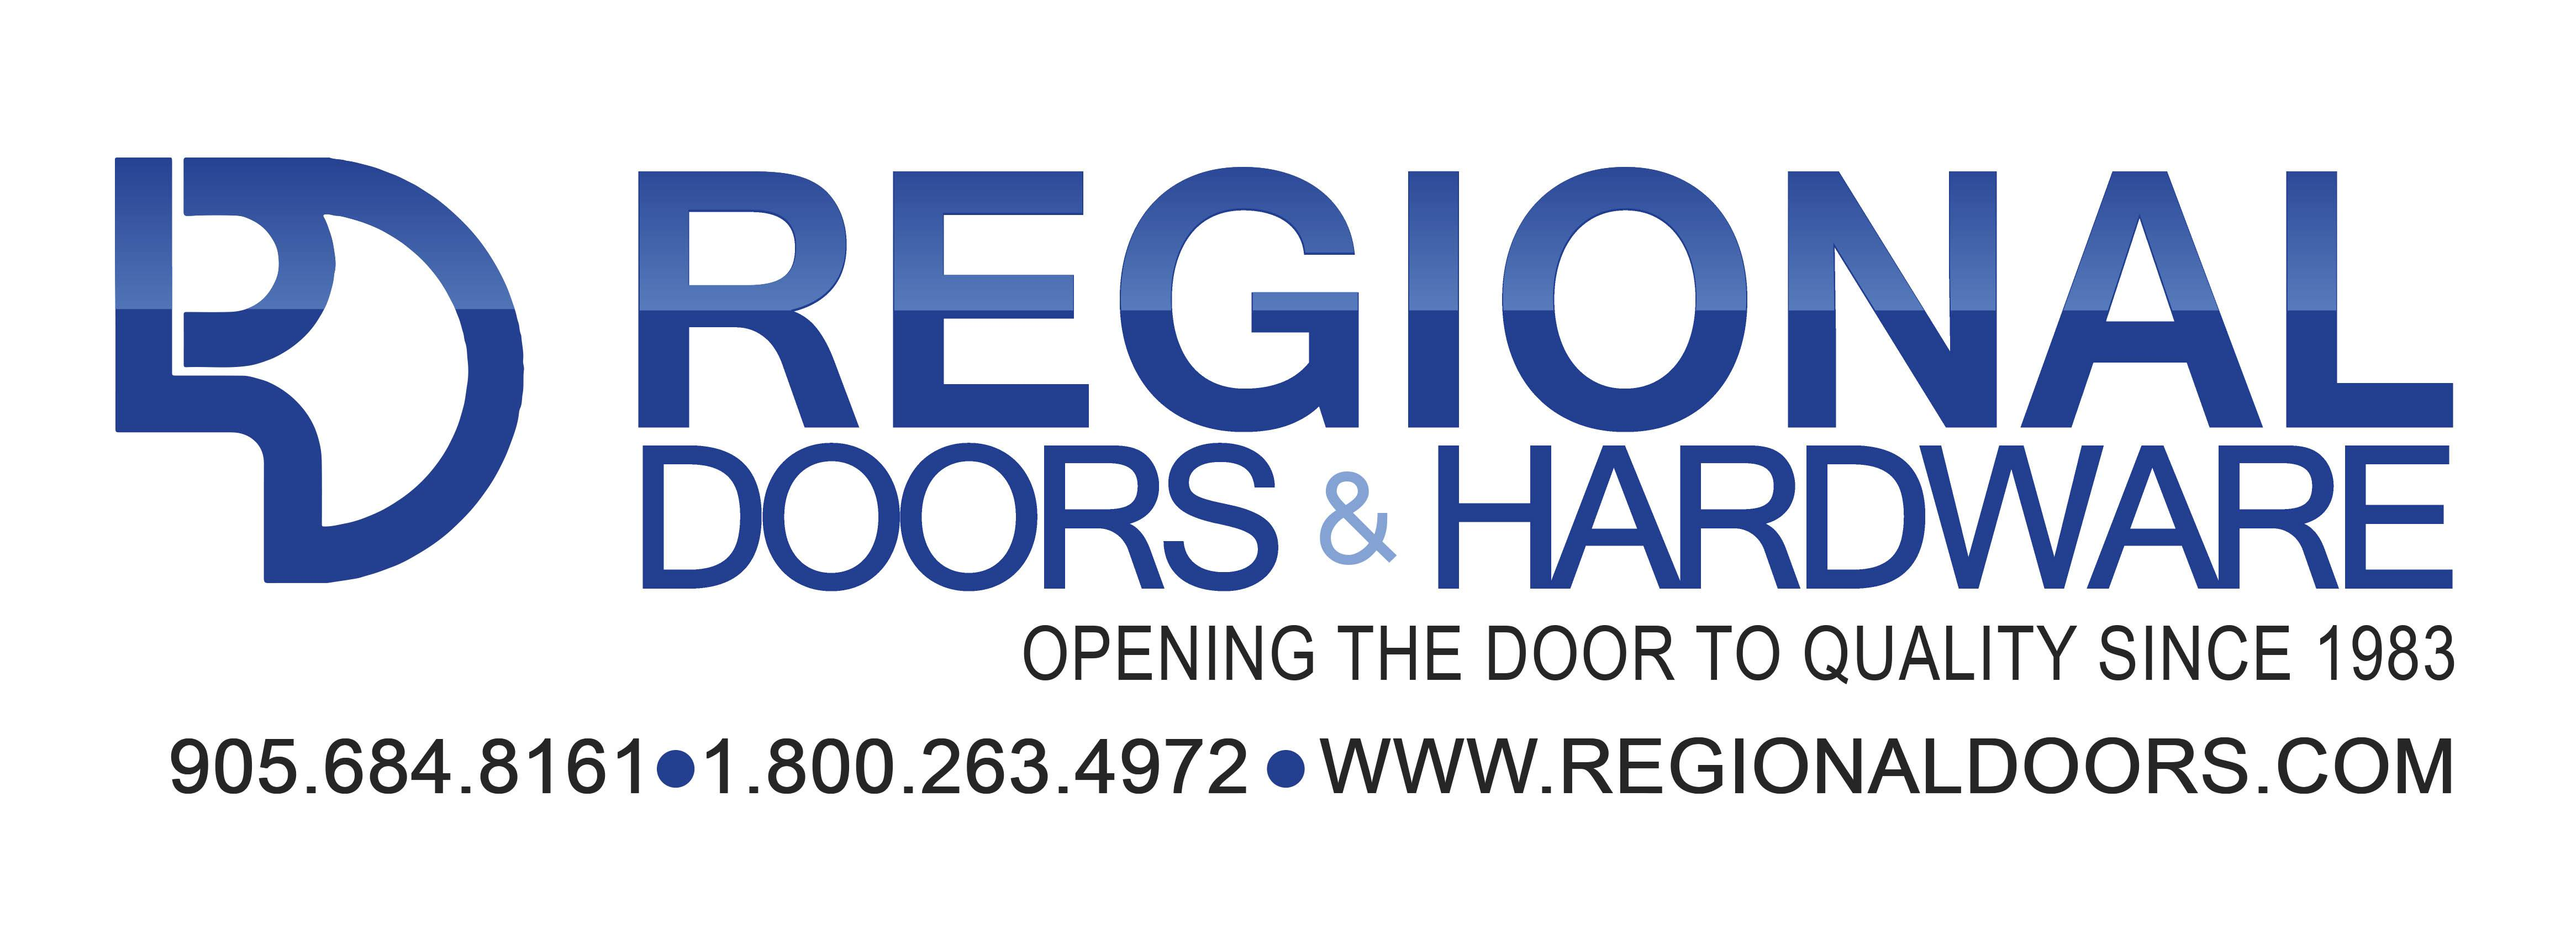 Regional Doors and Hardware